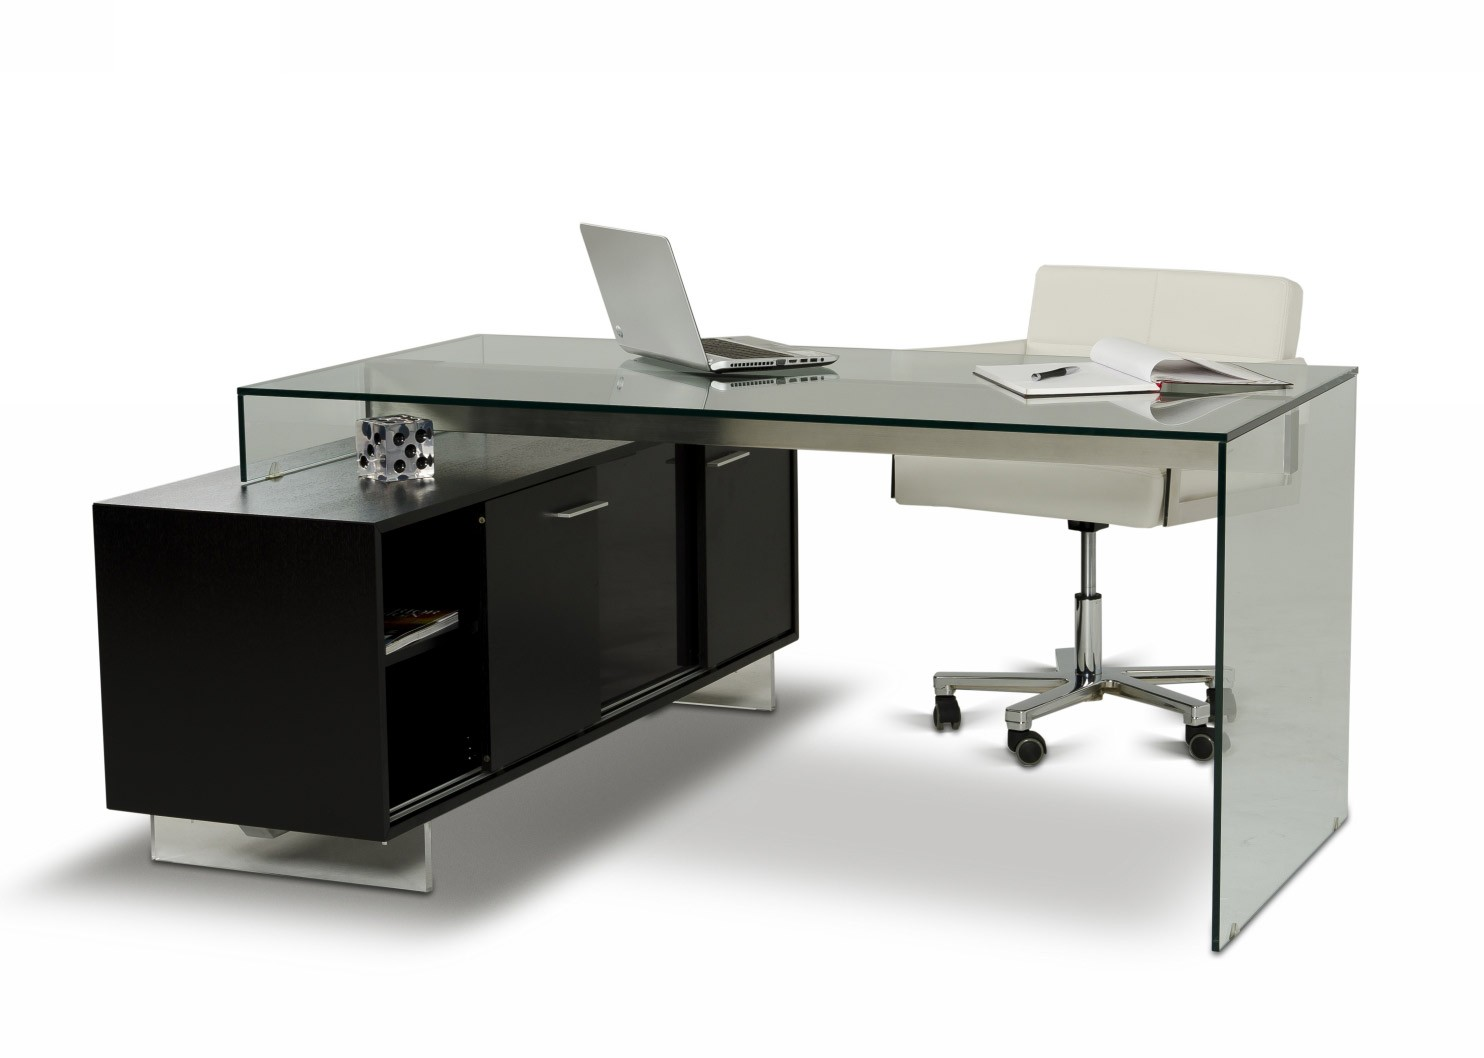 modern office desks Archives - Page 2 of 7 - LA Furniture Blog